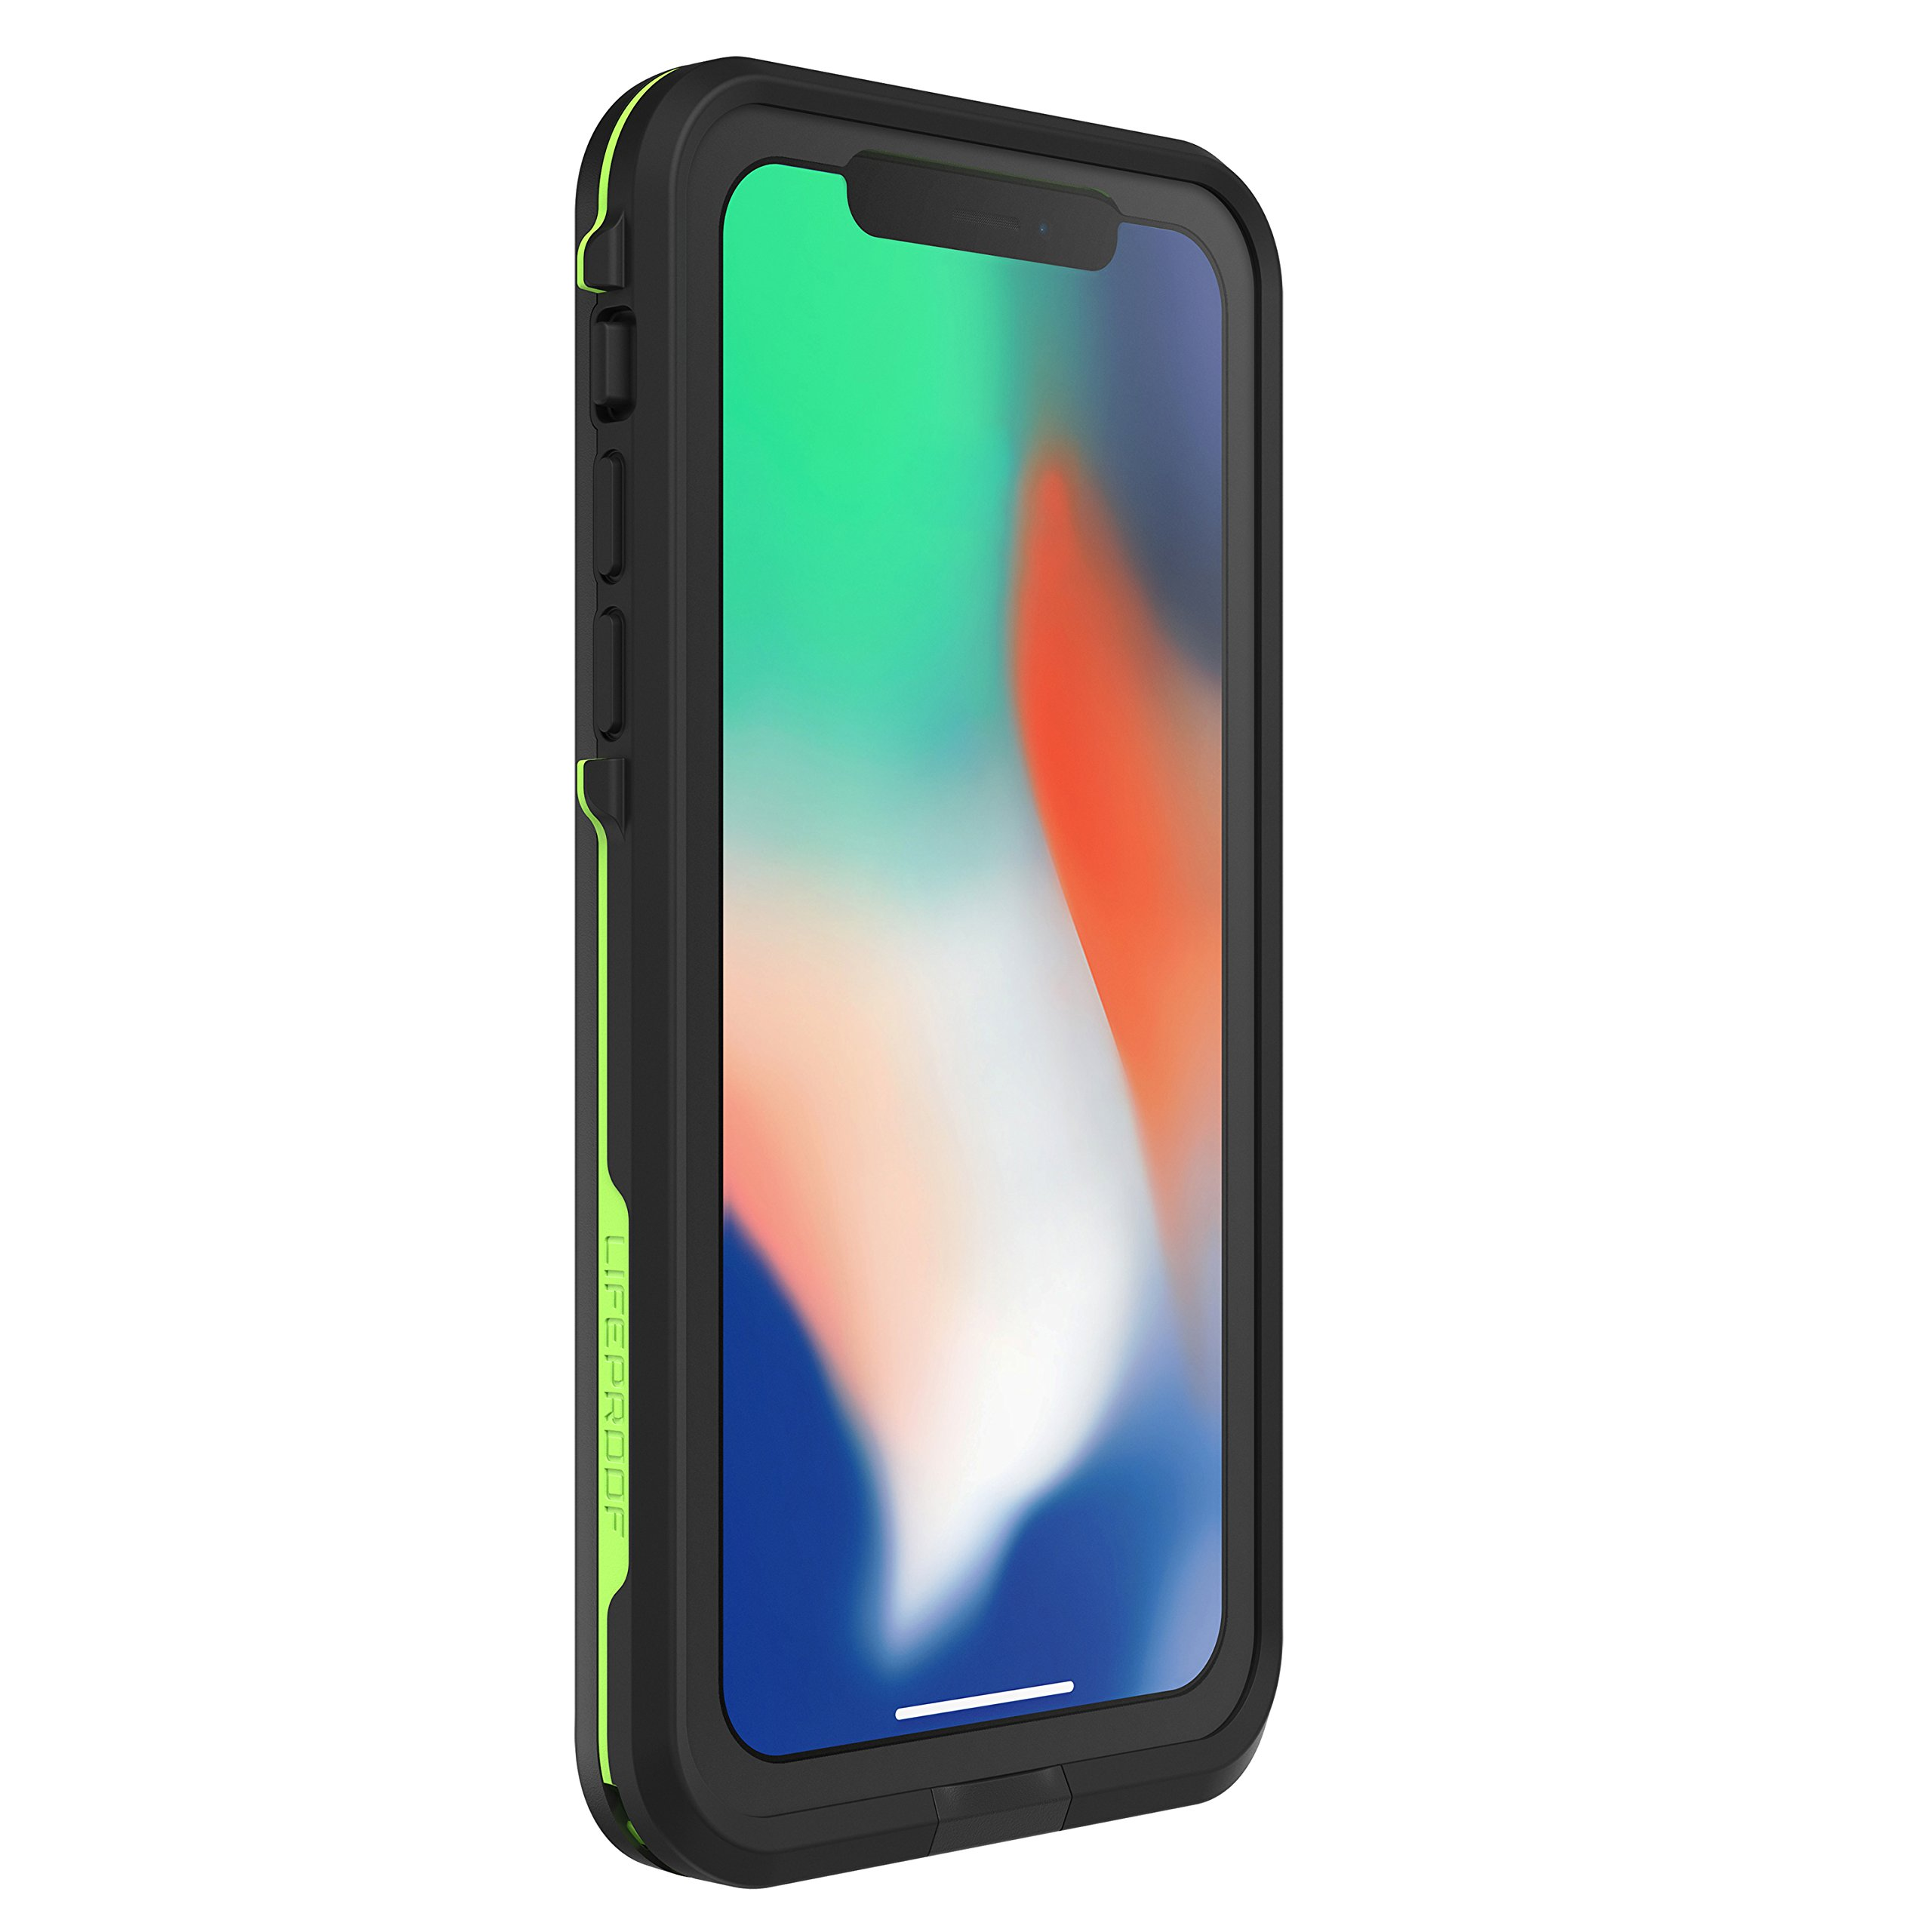 Lifeproof FRĒ SERIES Waterproof Case for iPhone X (ONLY) - Retail Packaging - NIGHT LITE (BLACK/LIME) by LifeProof (Image #3)